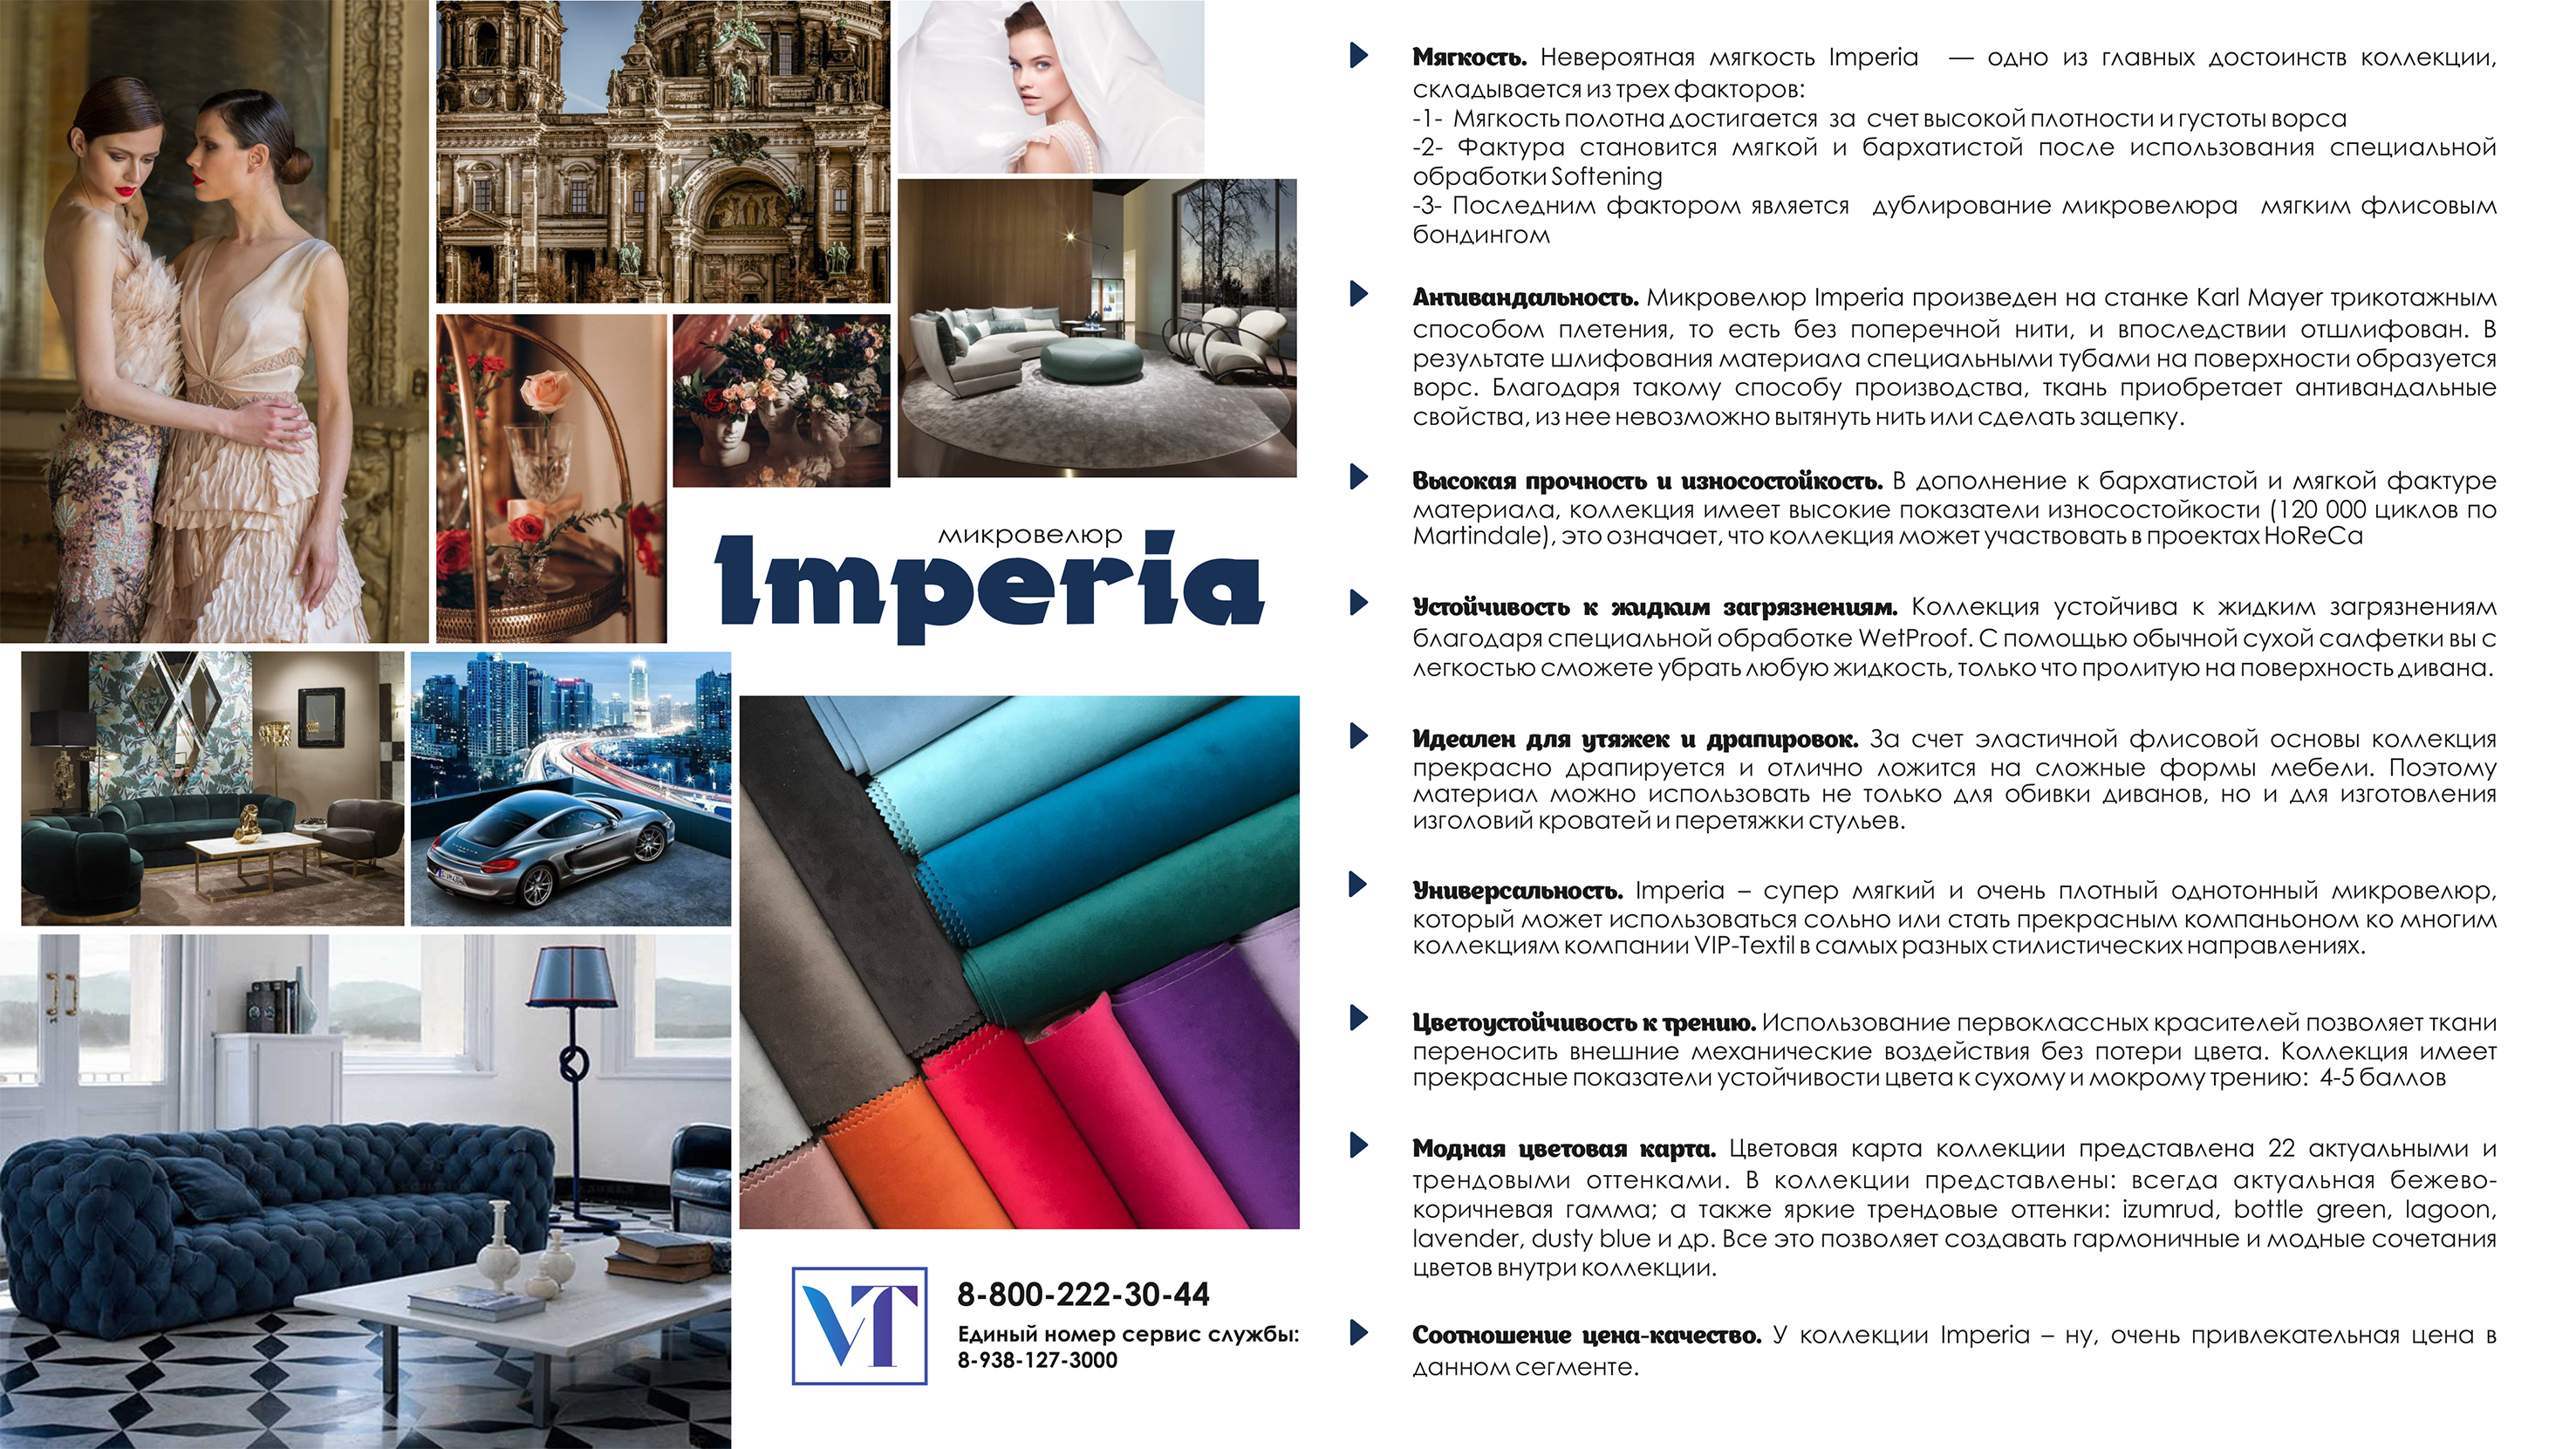 Imperia advantages